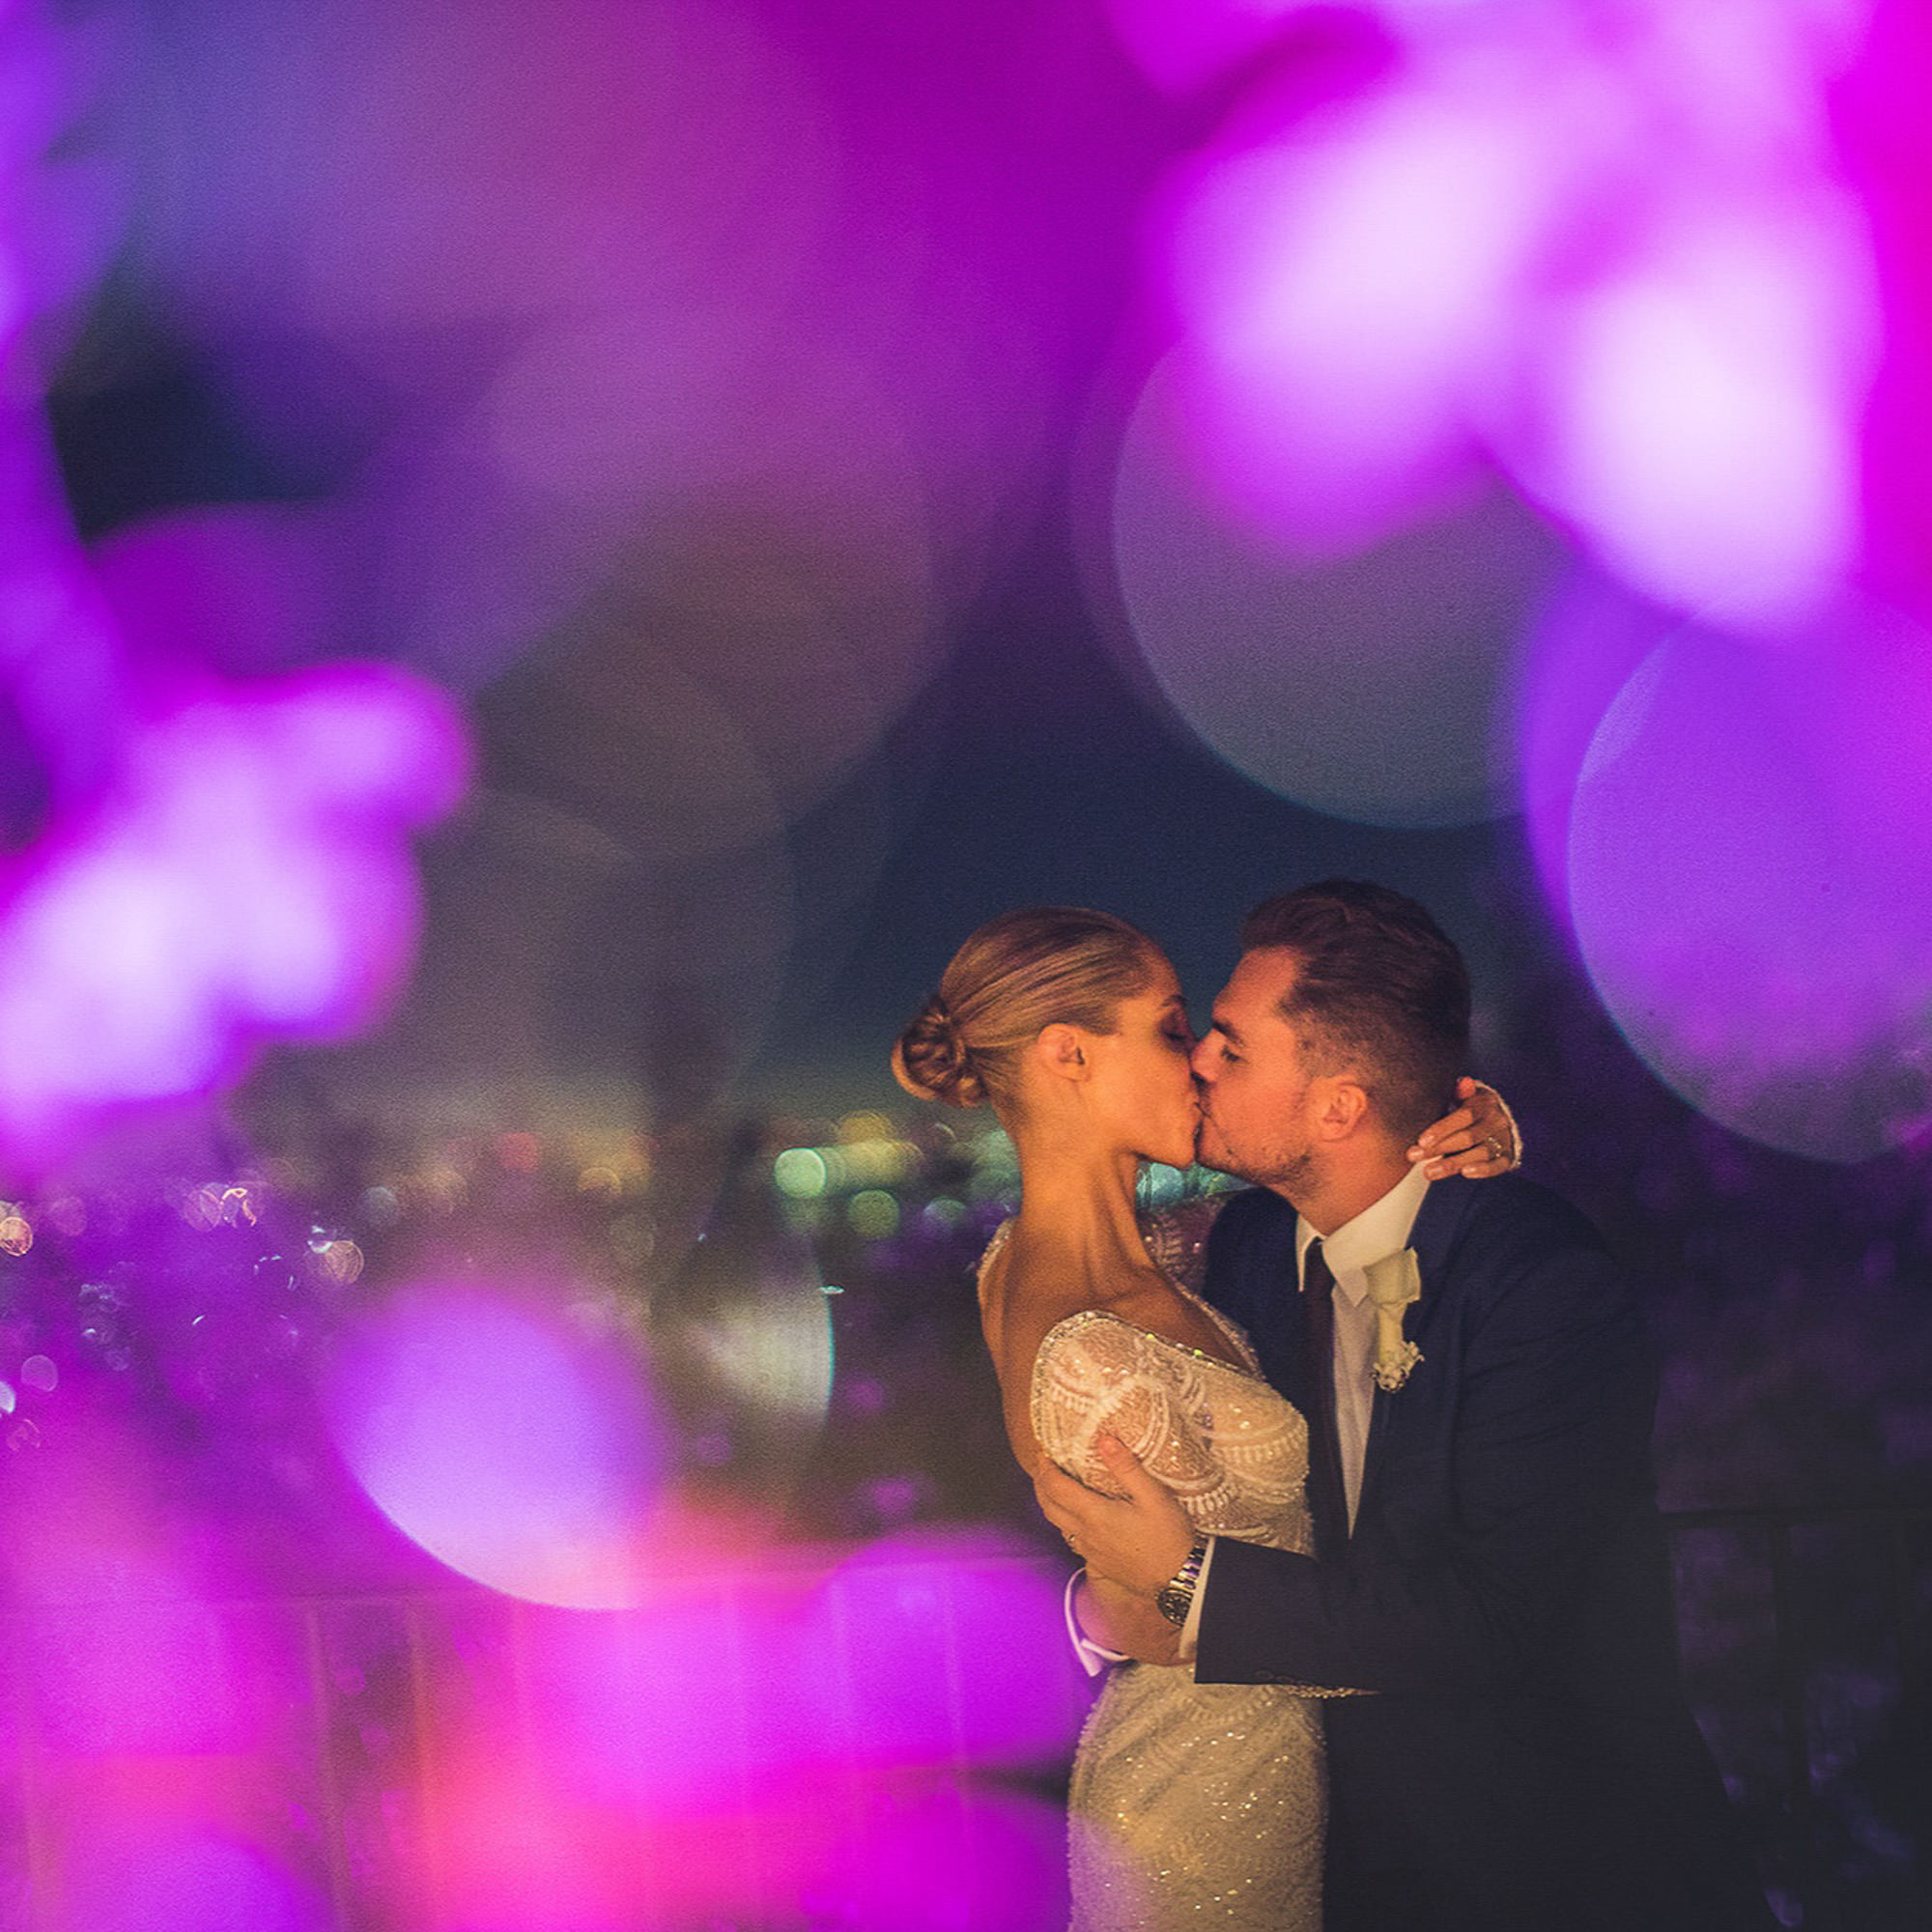 Bride and groom kiss framed by bokeh of purple lights, by Jeff Newsom